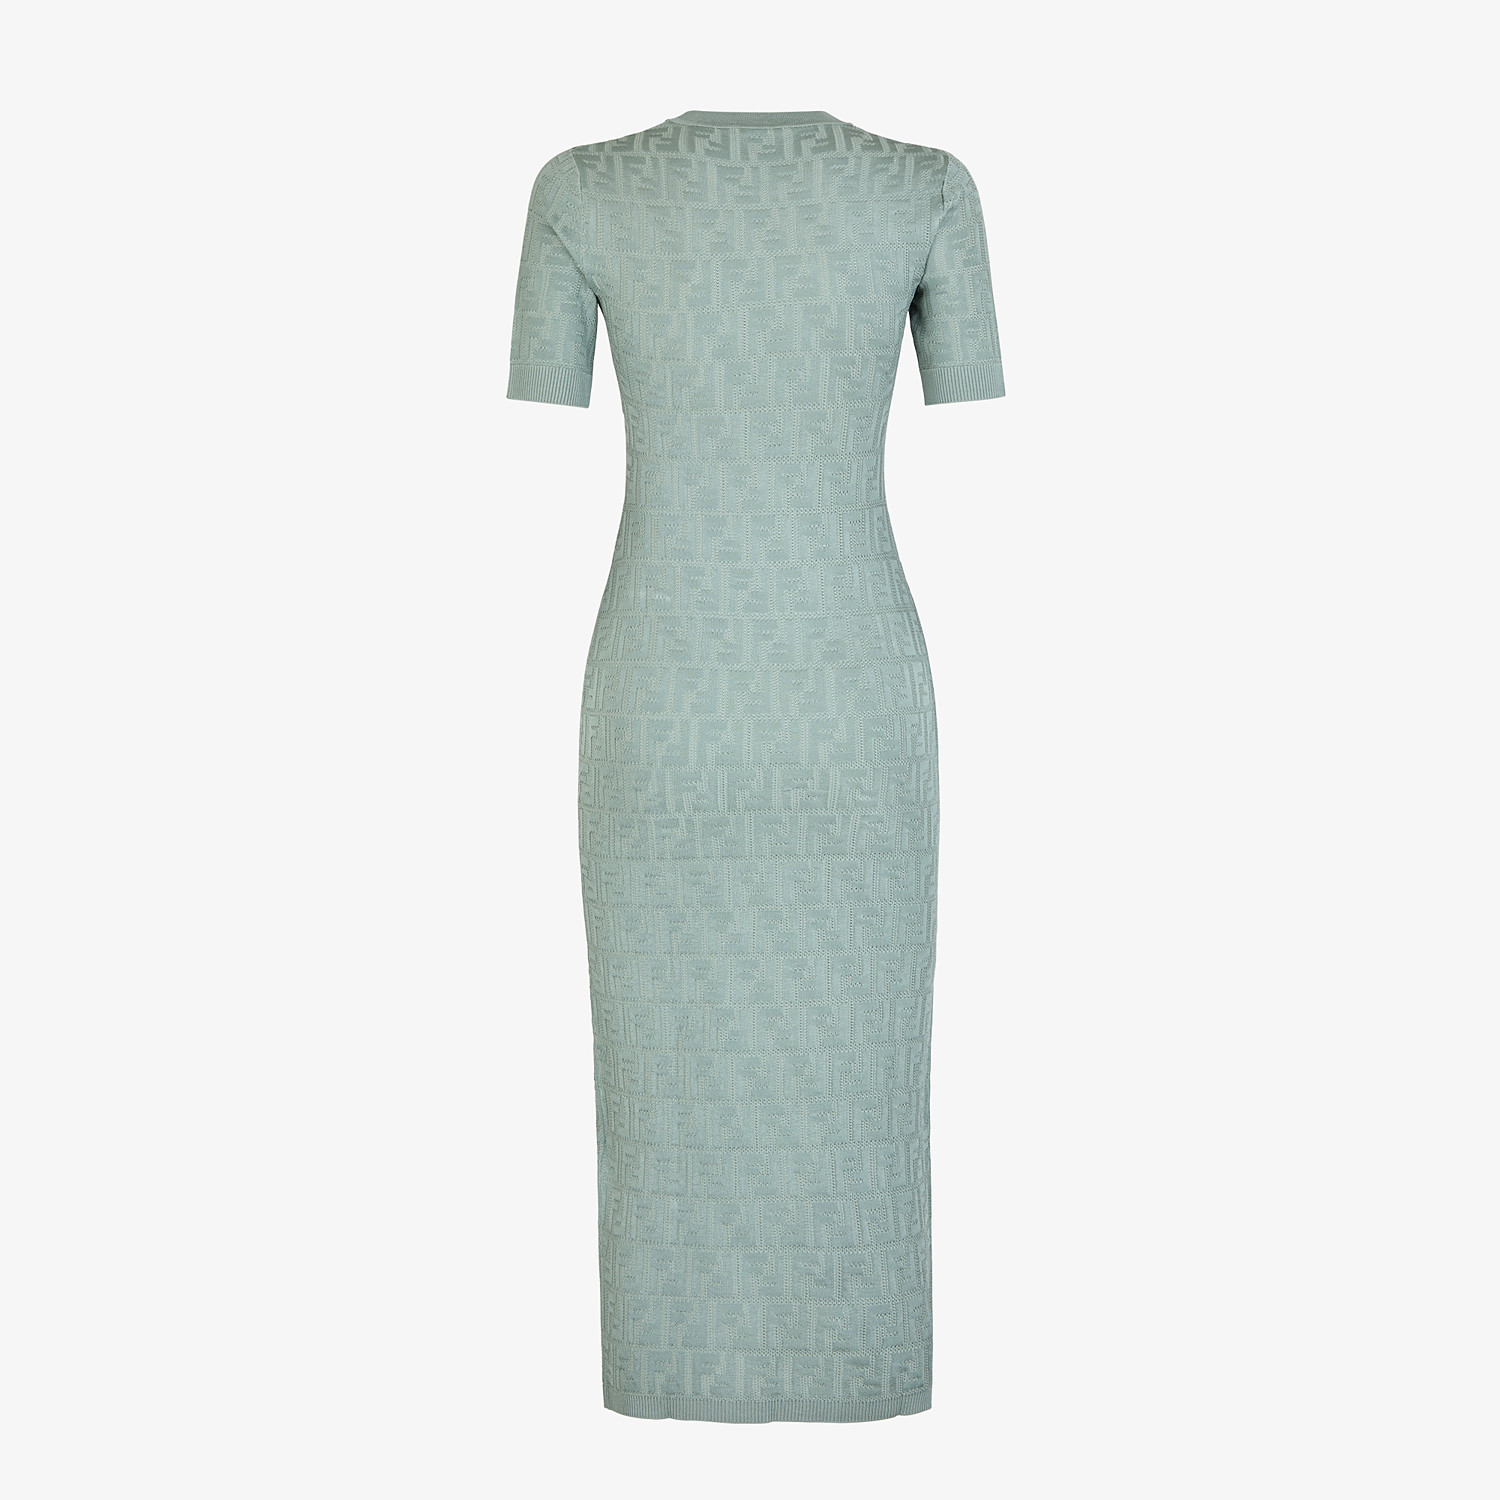 FENDI DRESS - Light blue viscose and cotton dress - view 2 detail